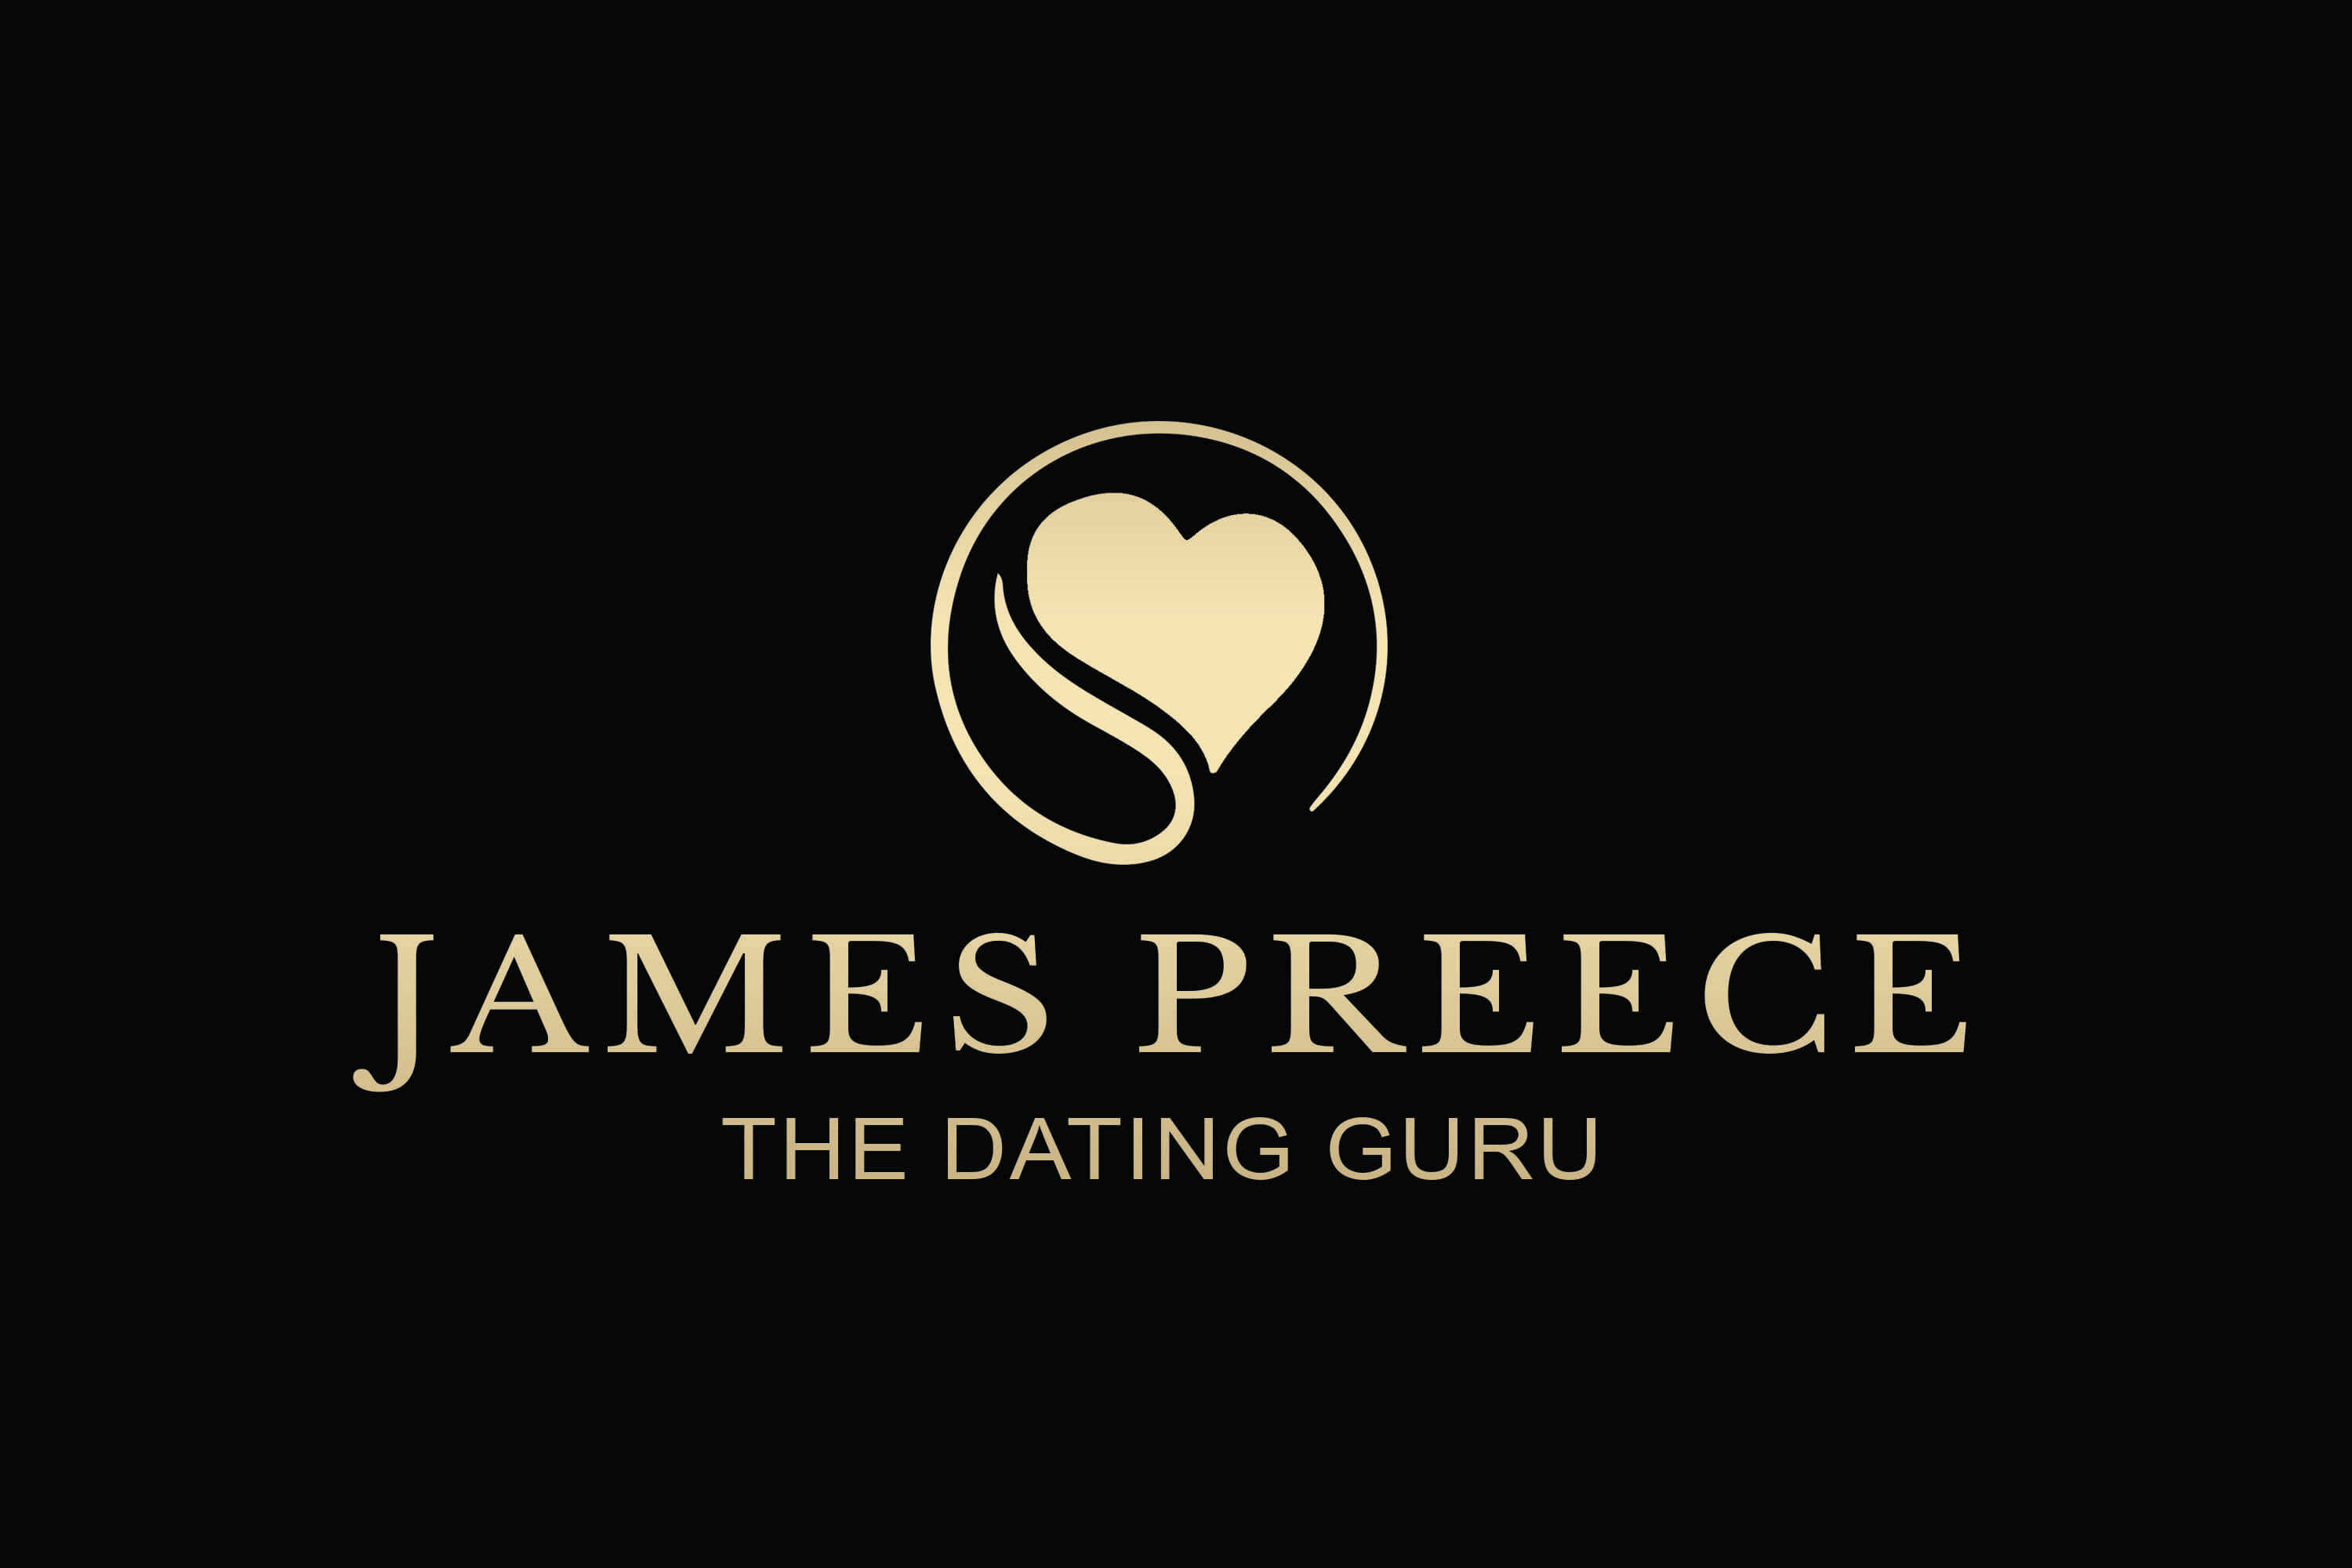 James Preece